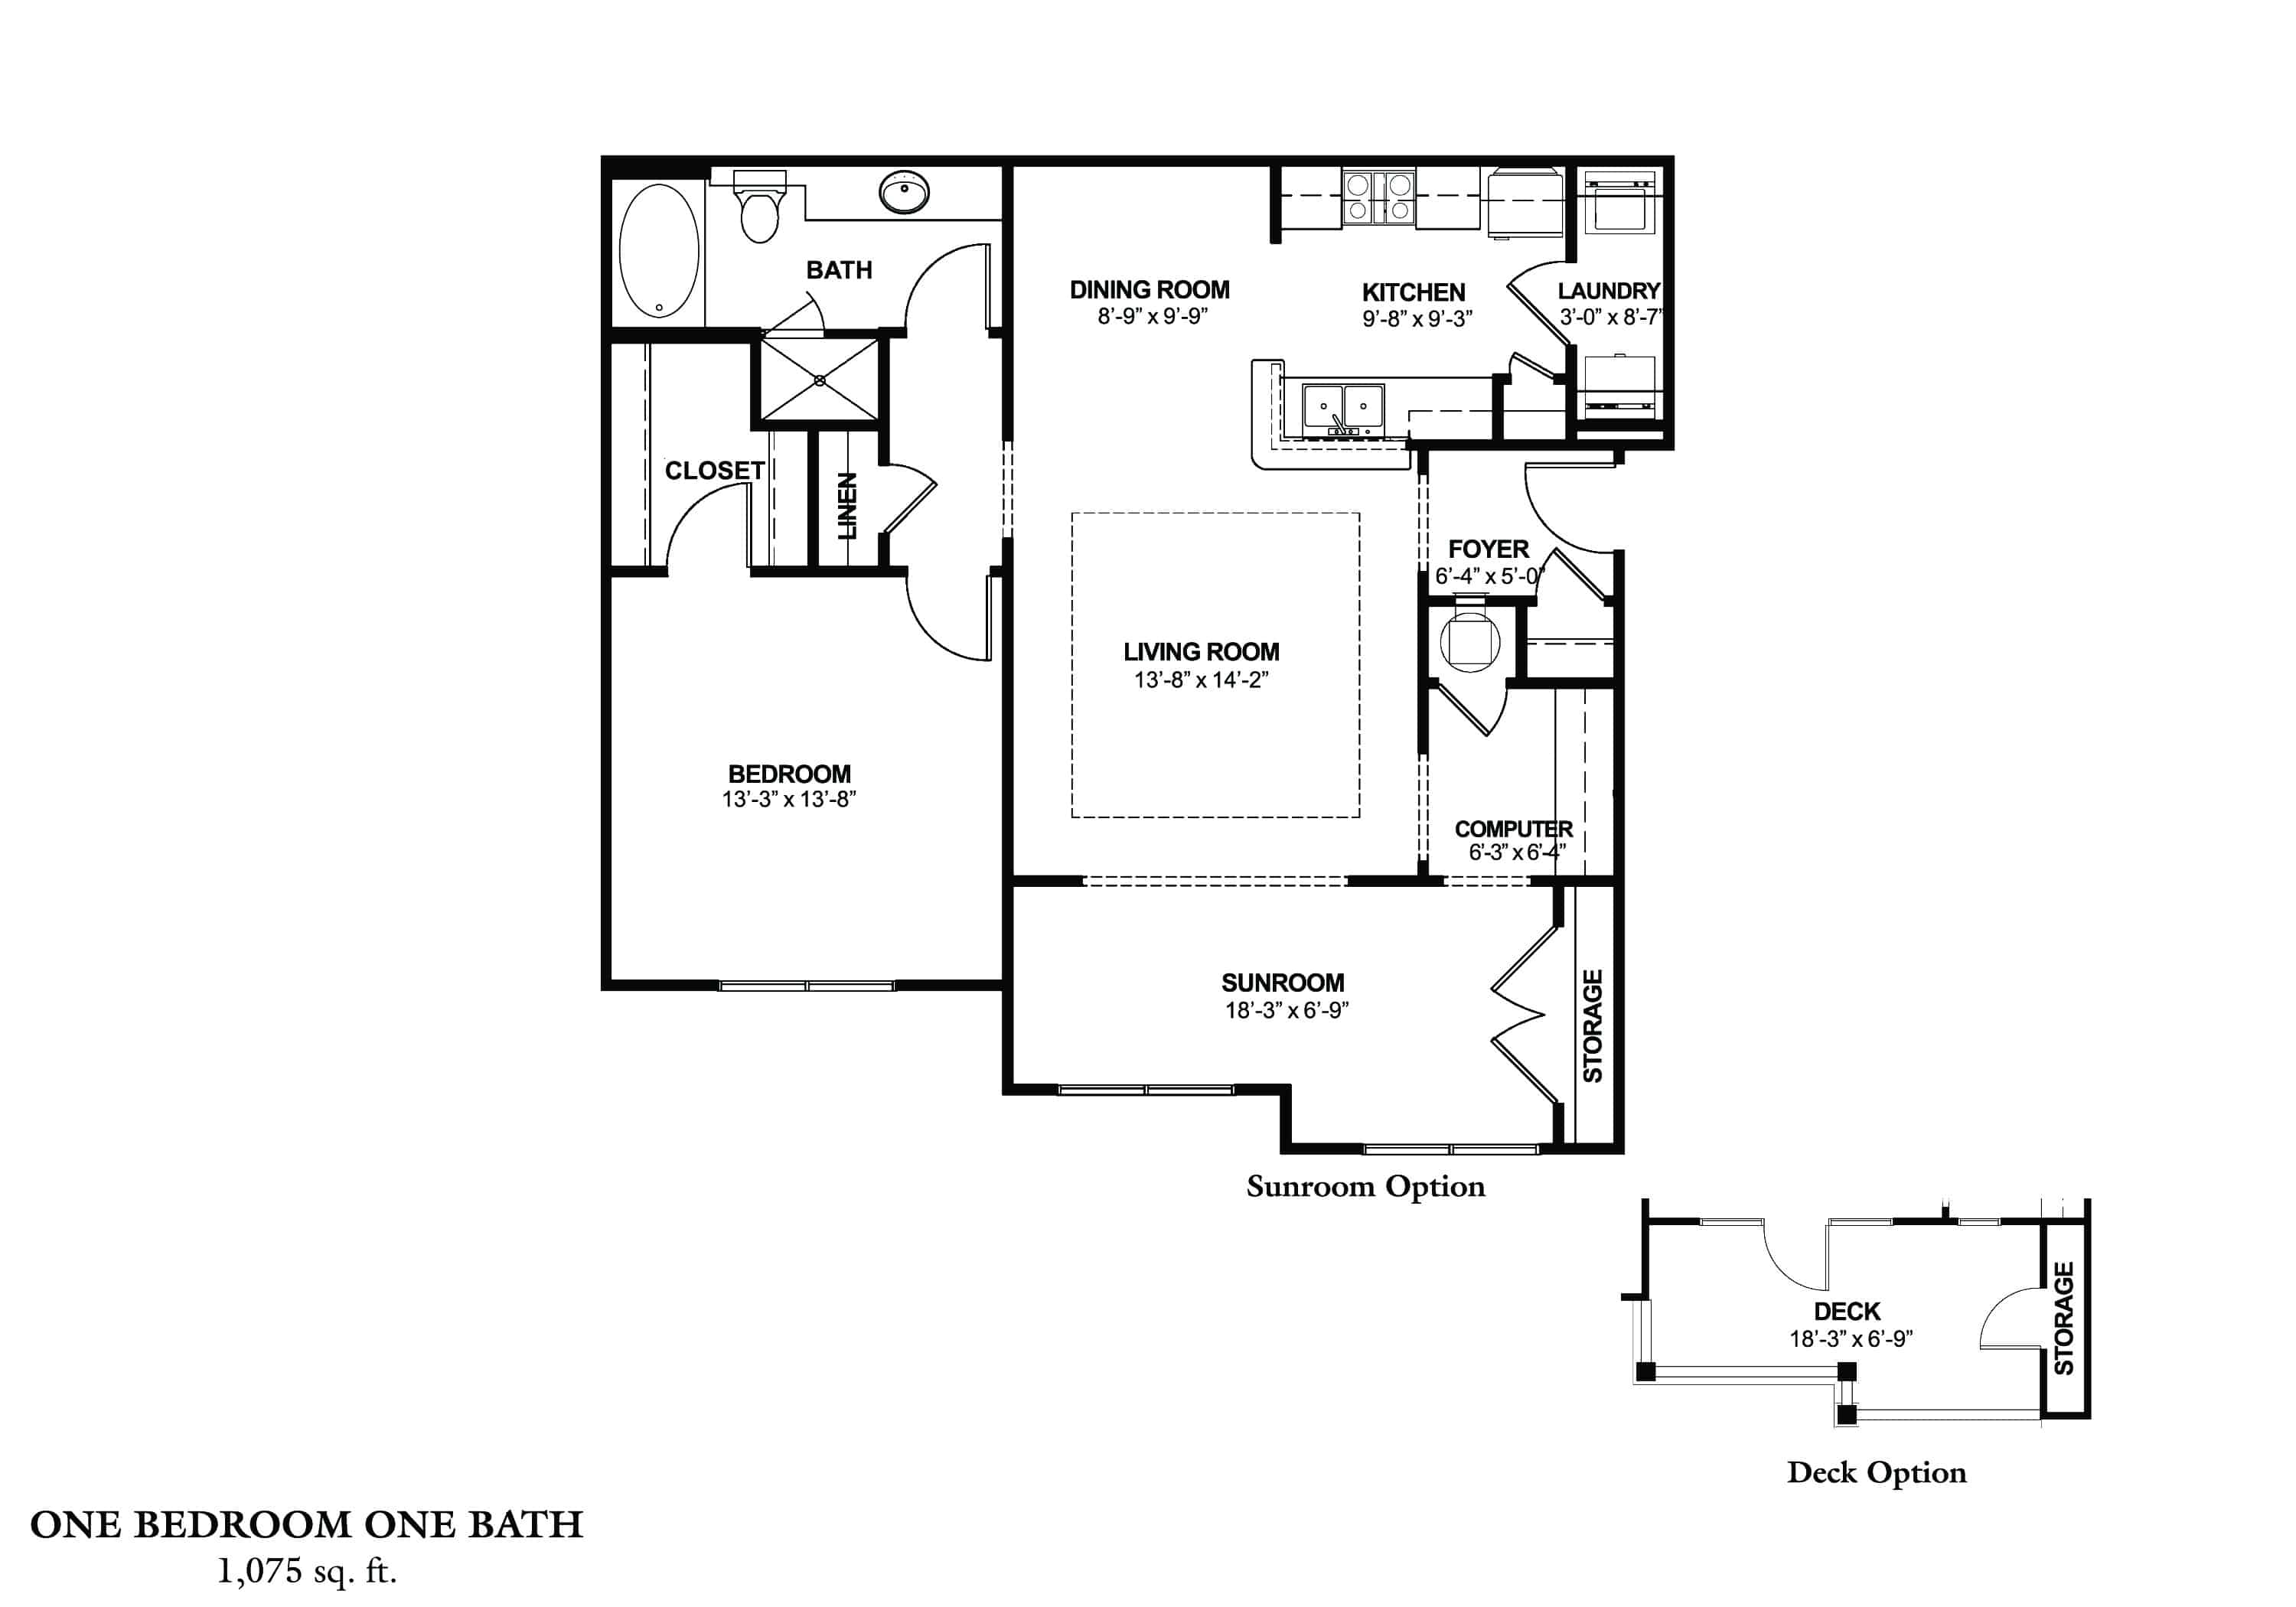 One Bedroom (A) - Phase II Approx. 906 sq. ft. with 169 sq. ft. Deck Beds 1 Baths 1 in Greystone's Columbus GA Apartments